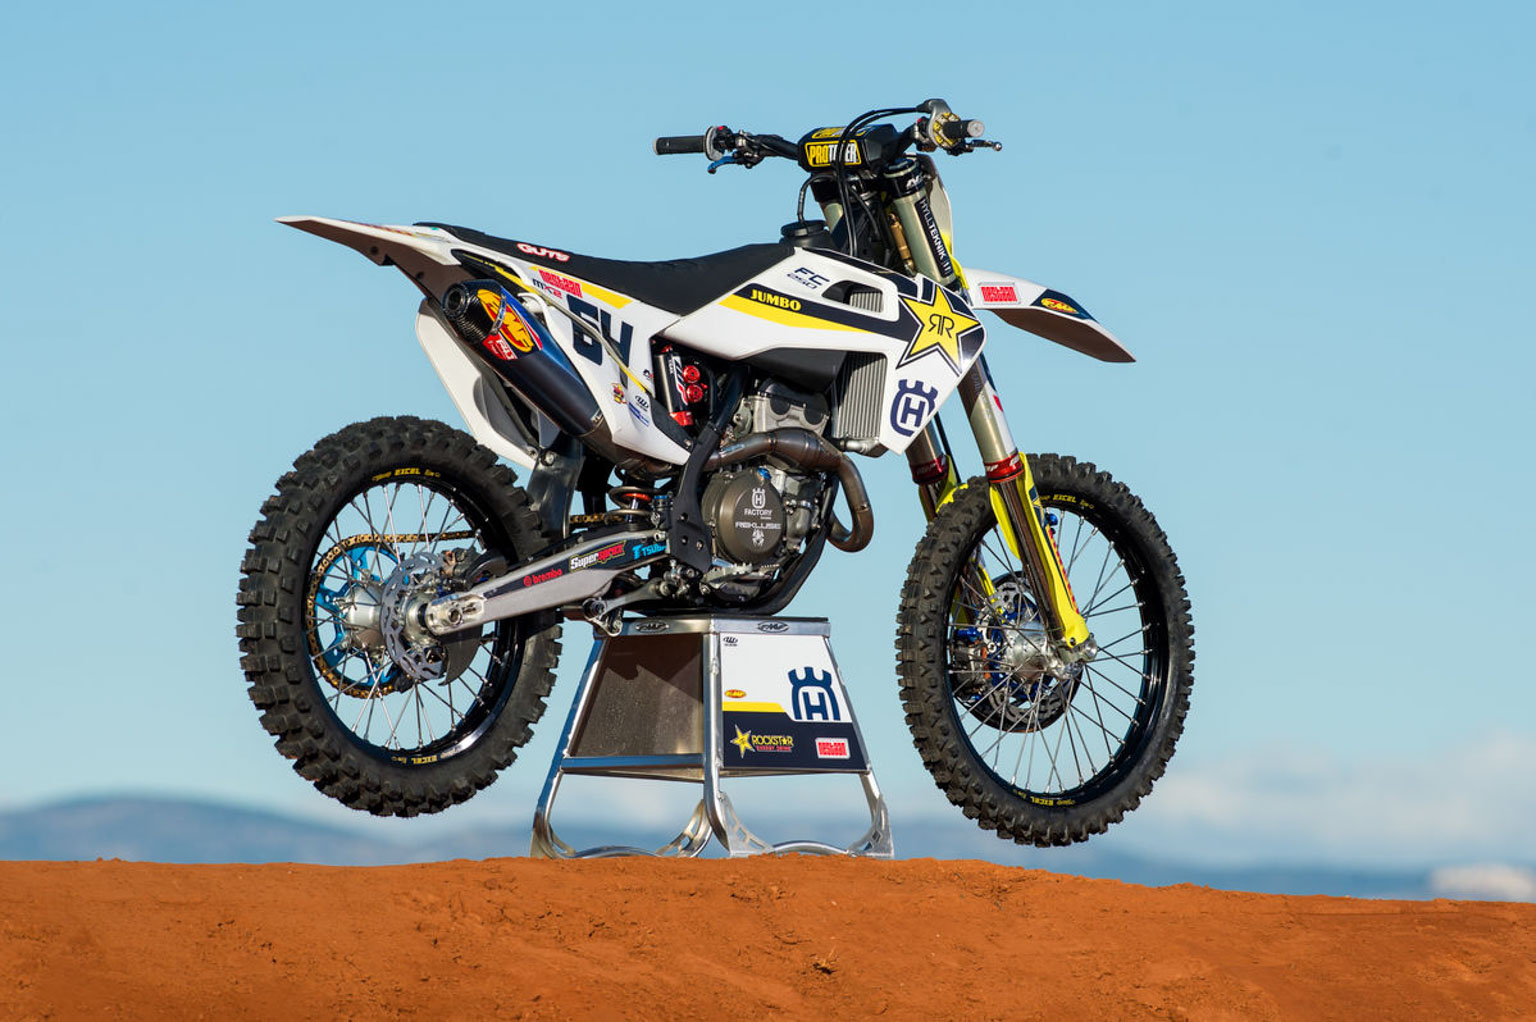 42338_Covington_Bike_Rockstar Energy Husqvarna MX2 Factory Racing_shotbybavo_10